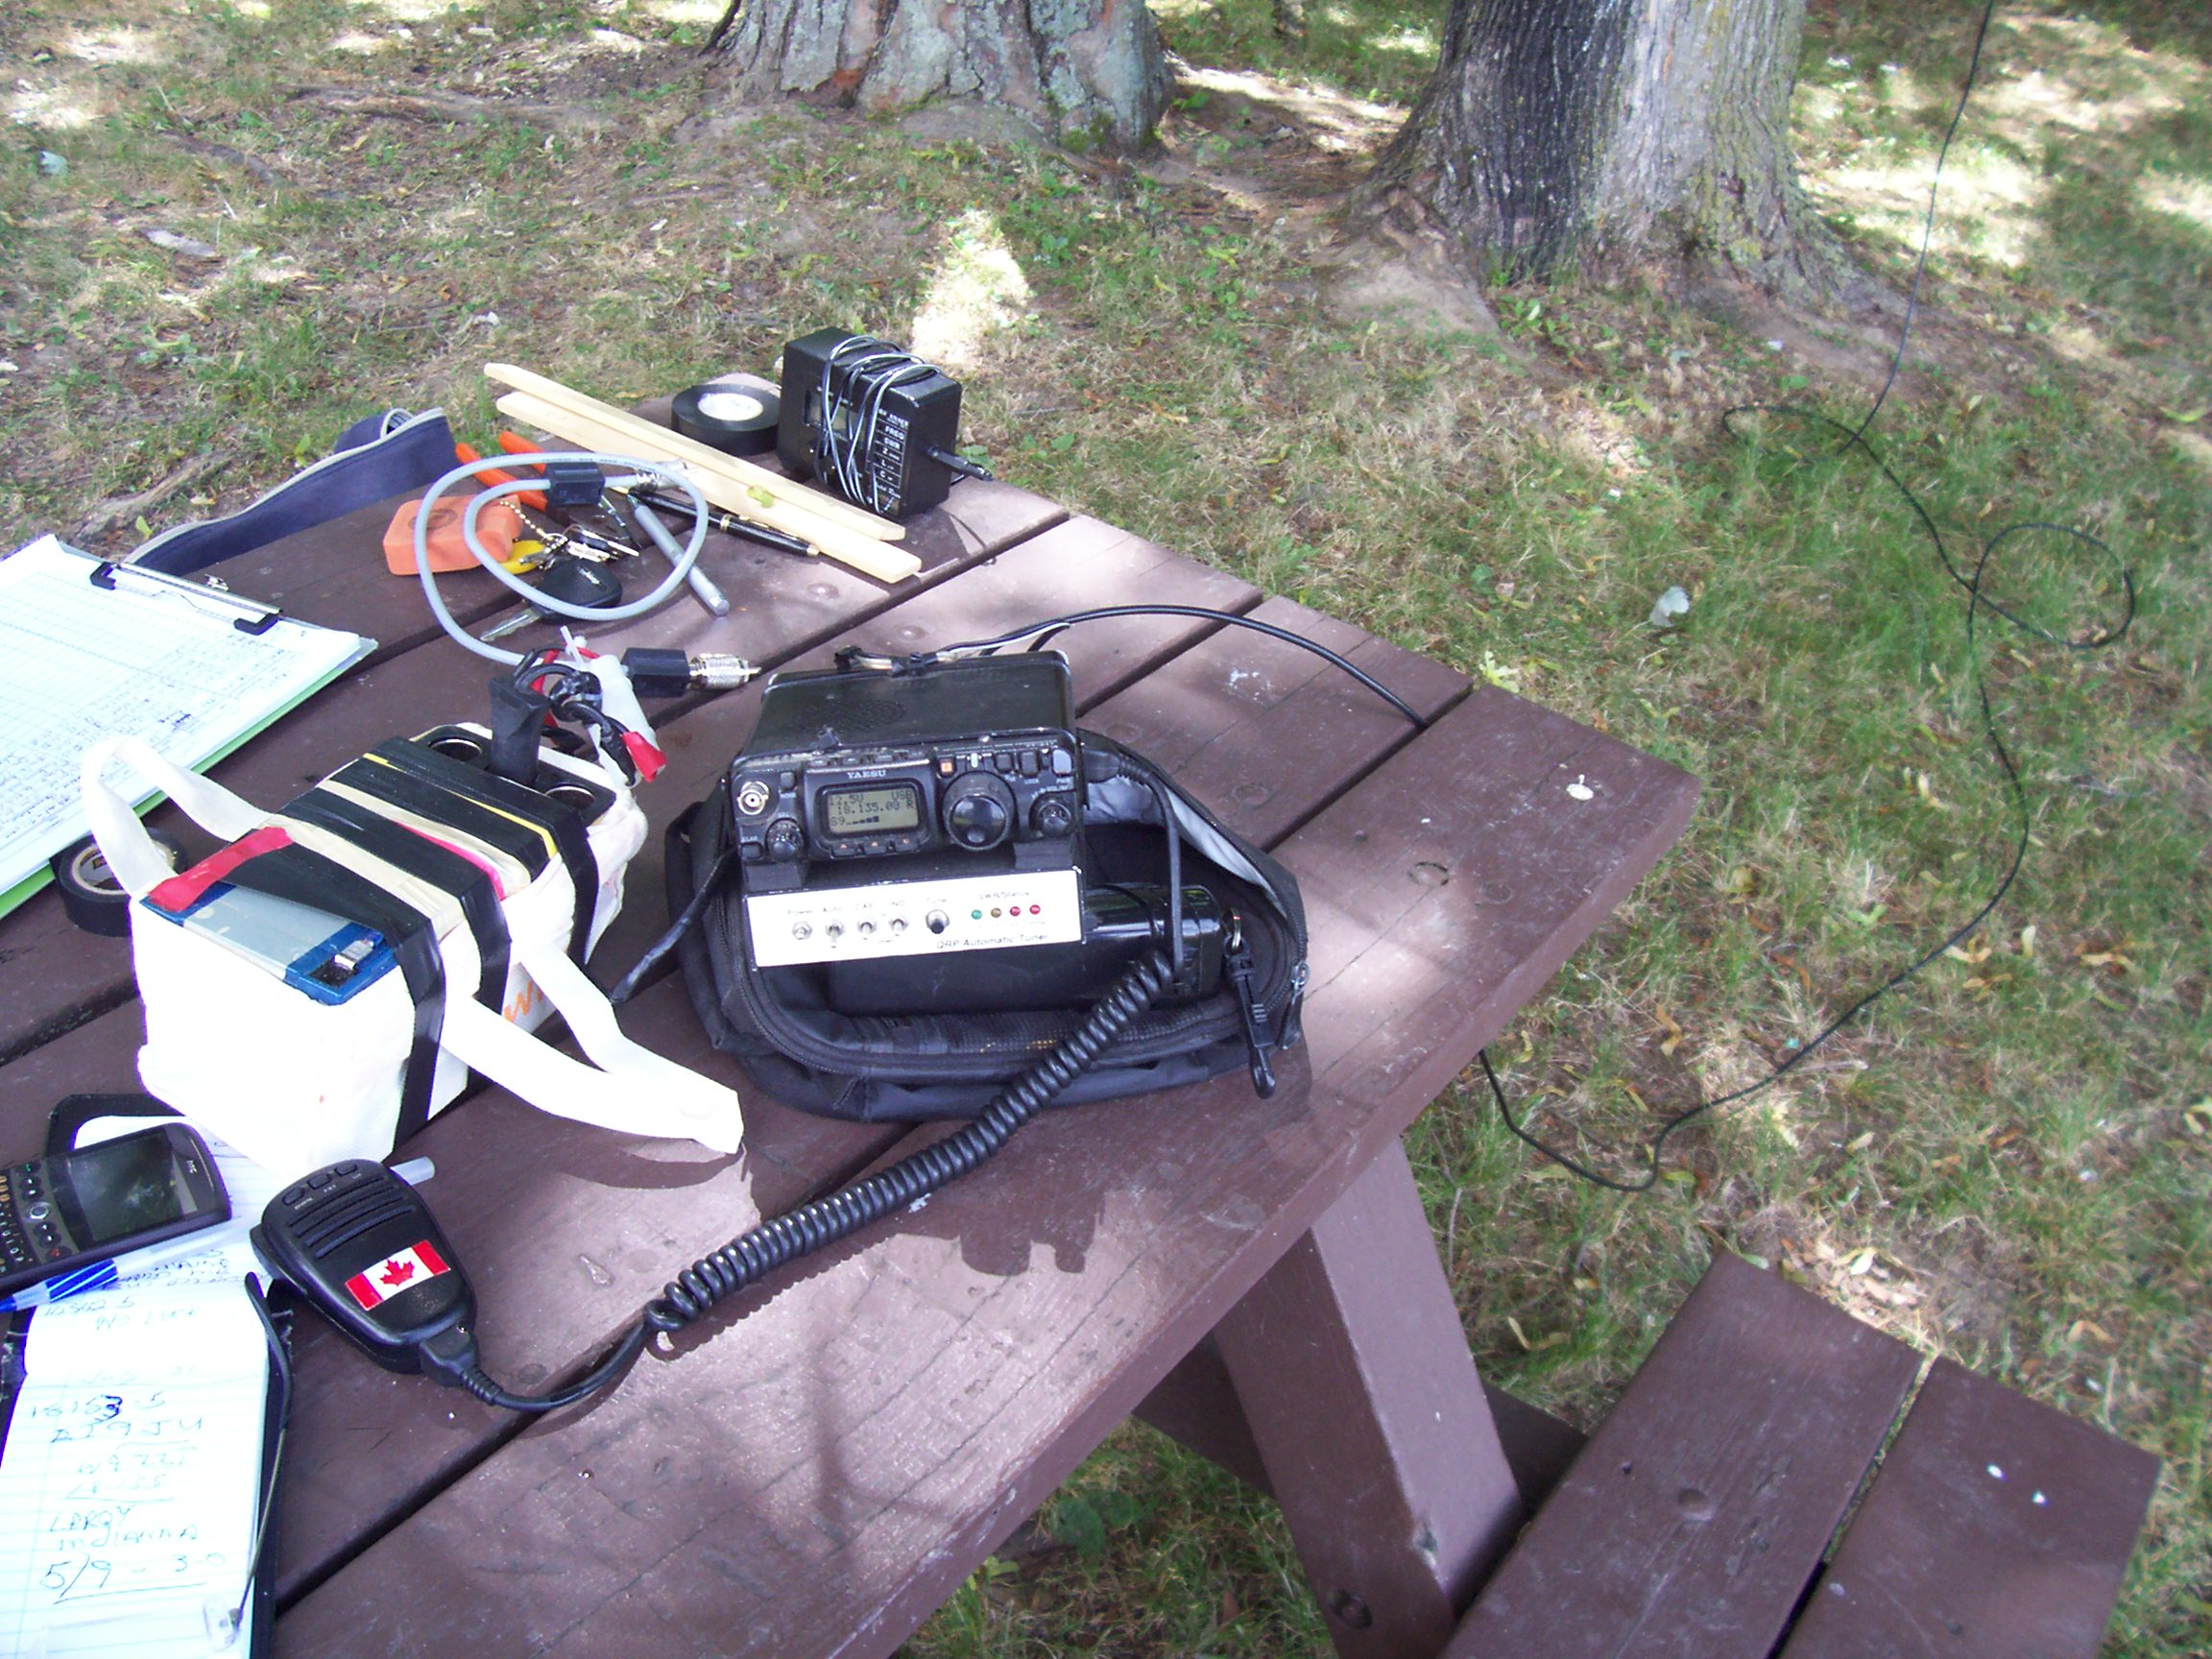 Tuning Time For The Icom Ah 4